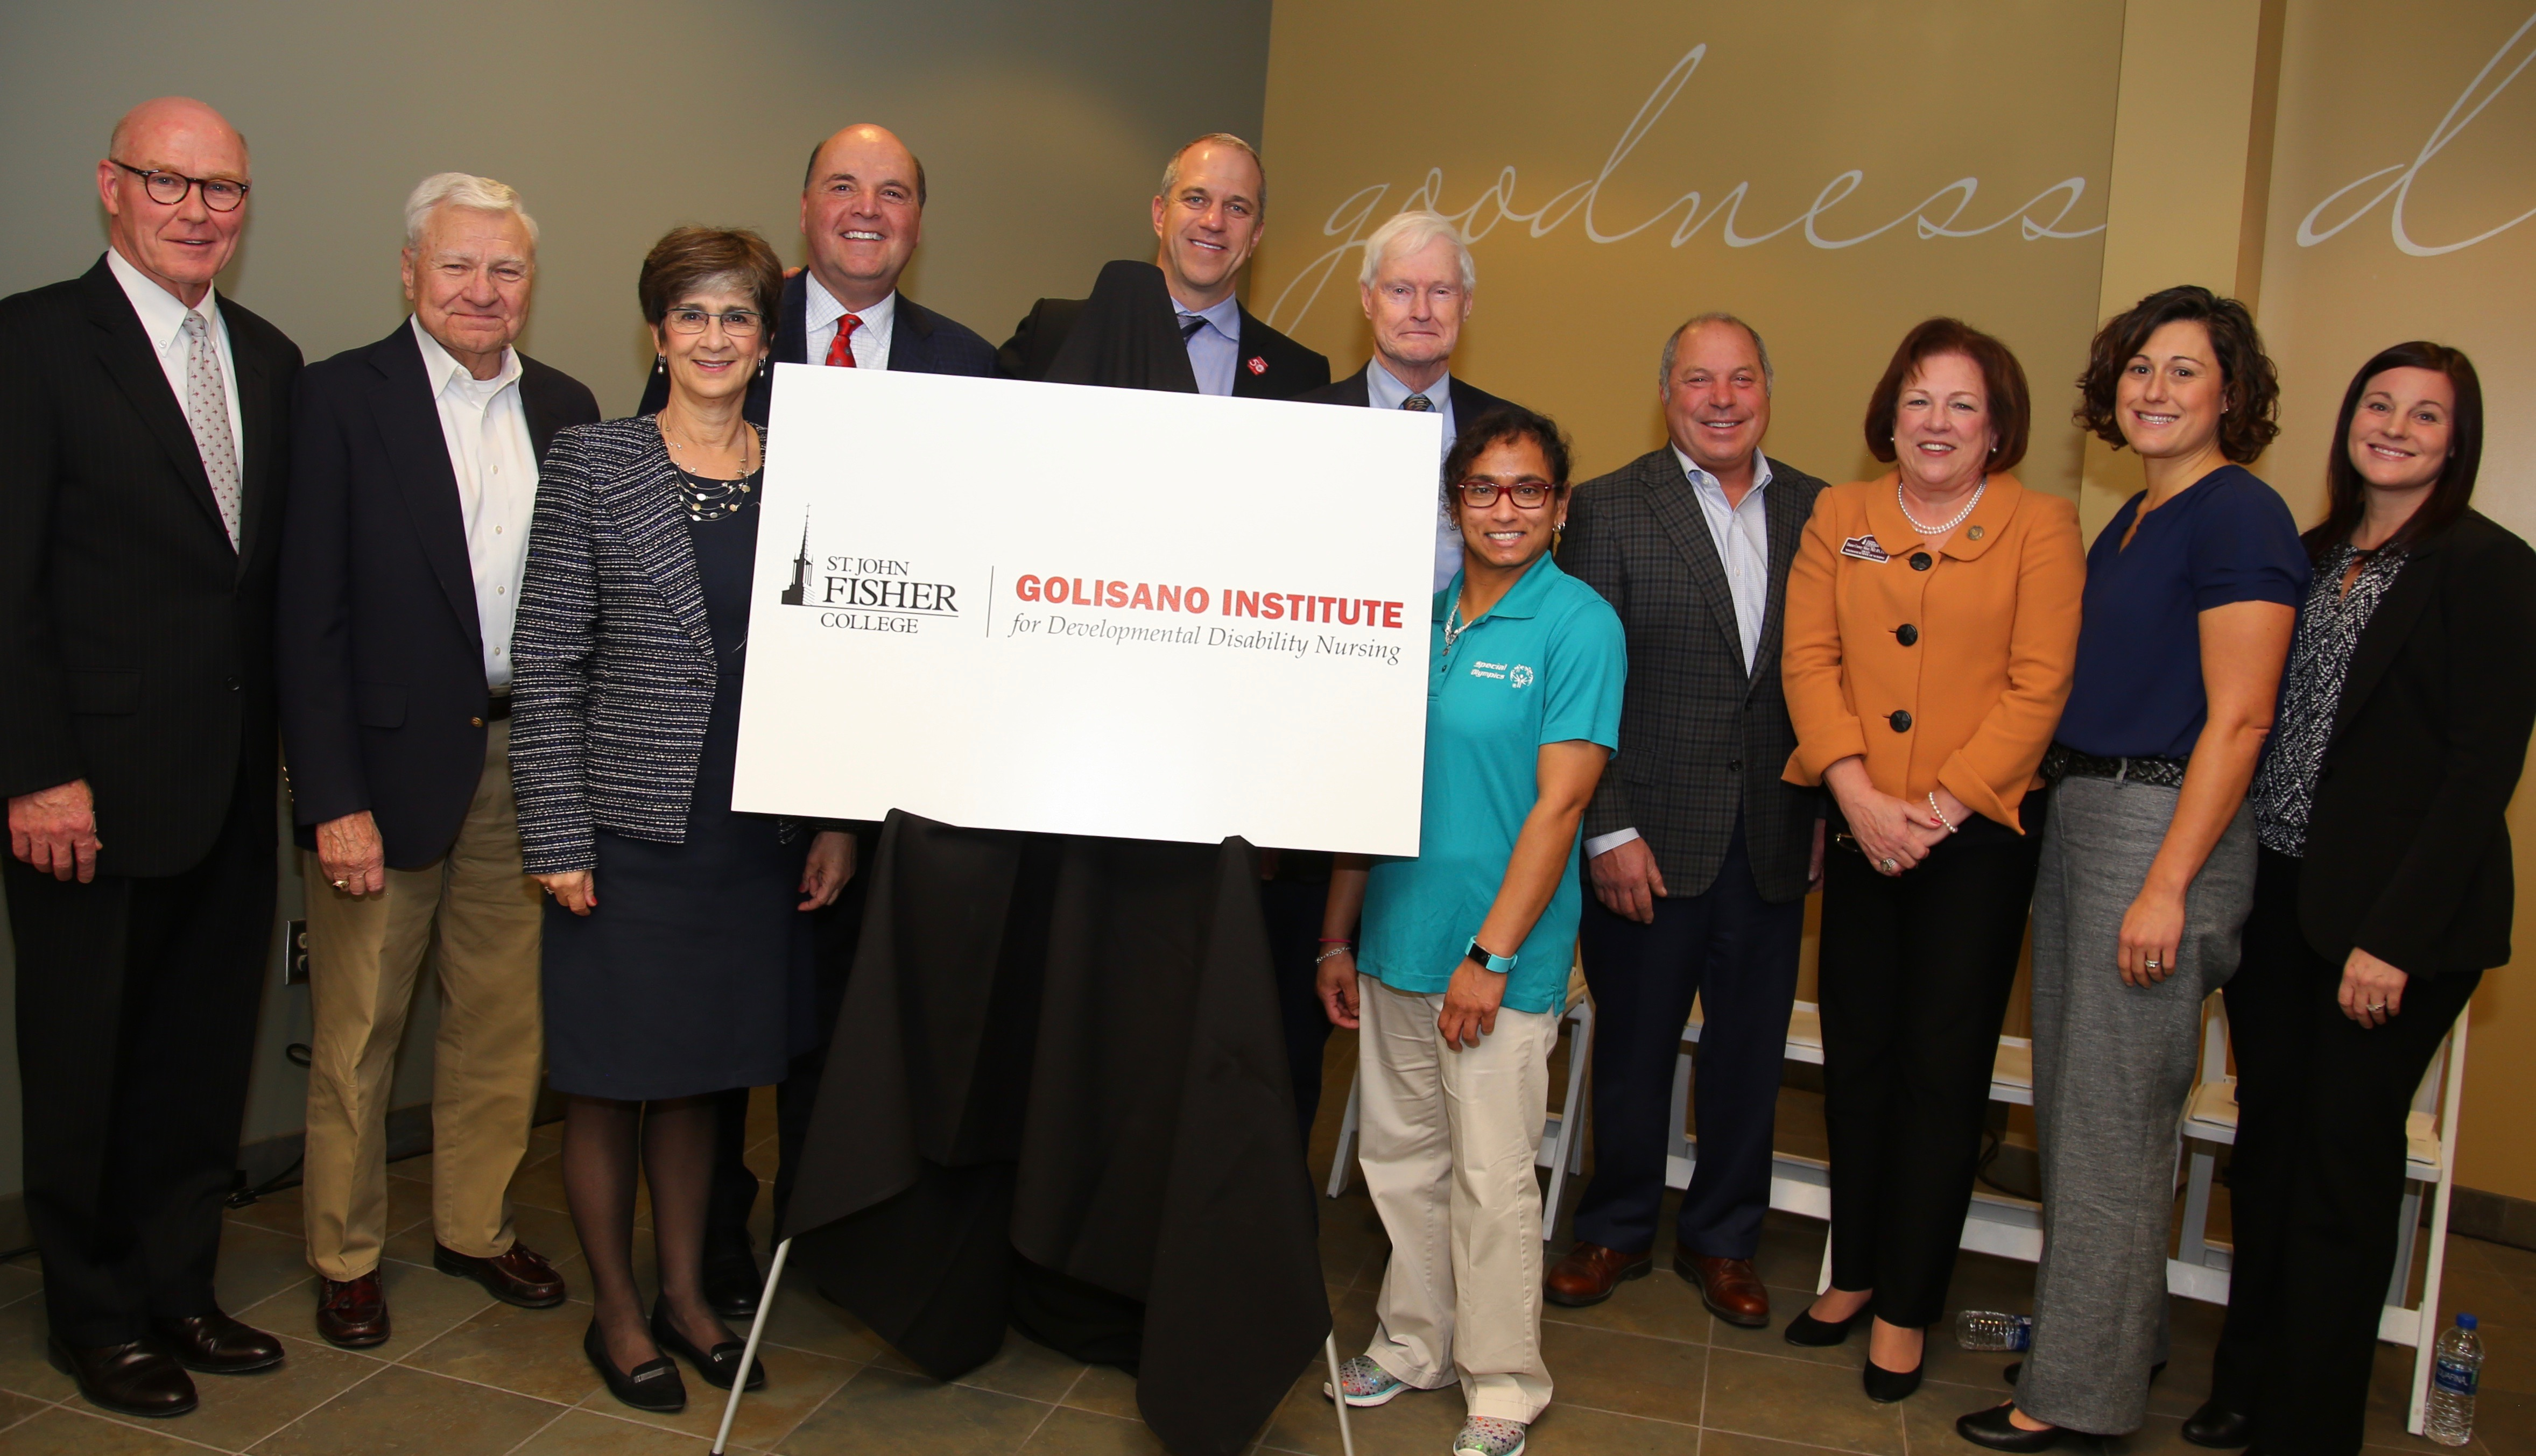 Golisano Institute Annouuncement